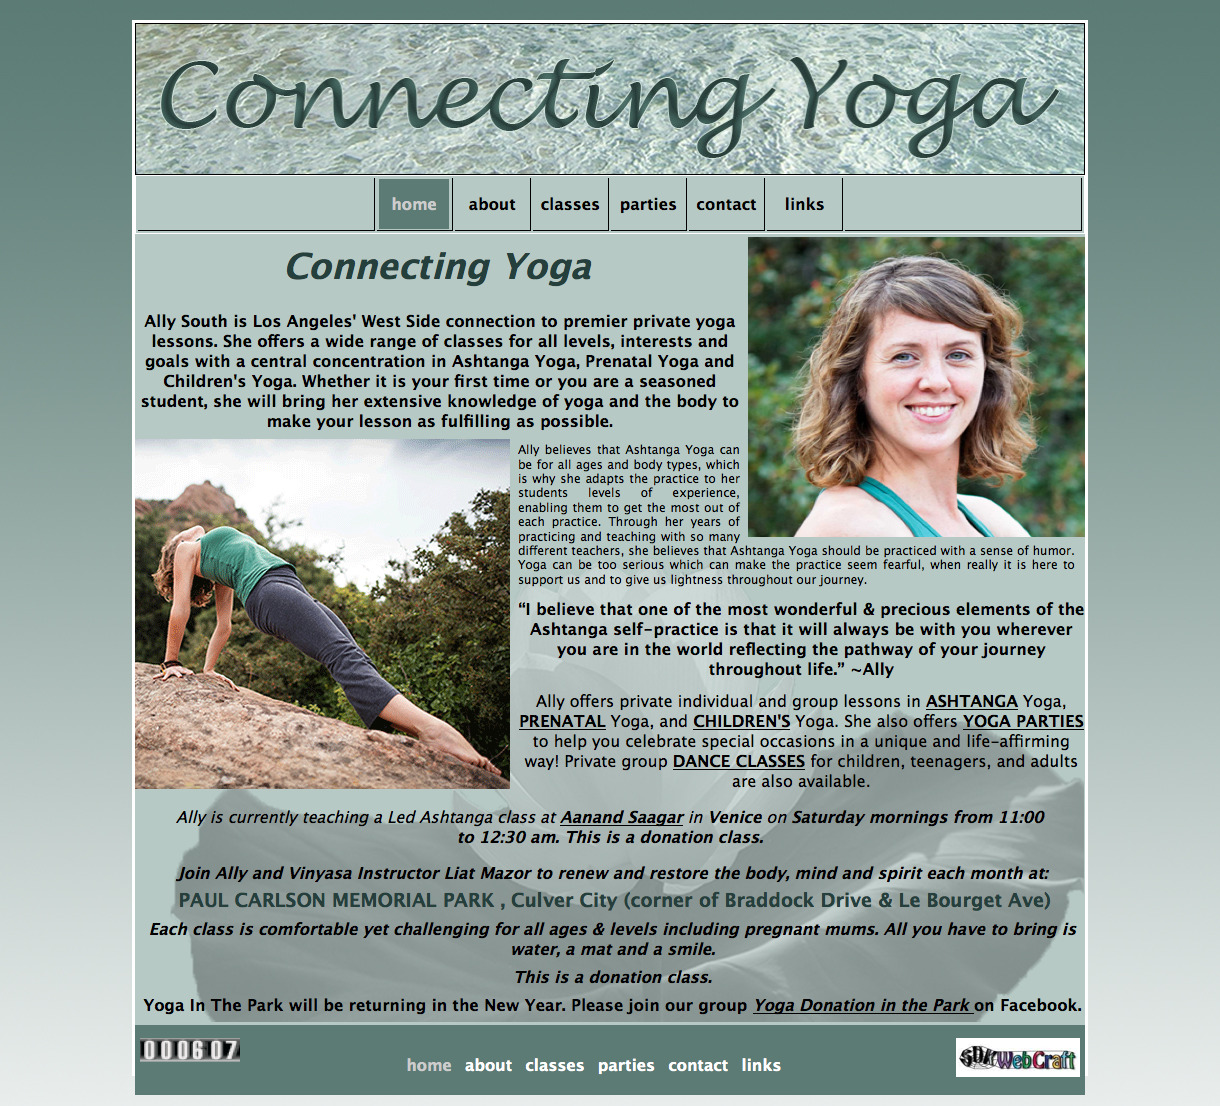 connectingyoga.com